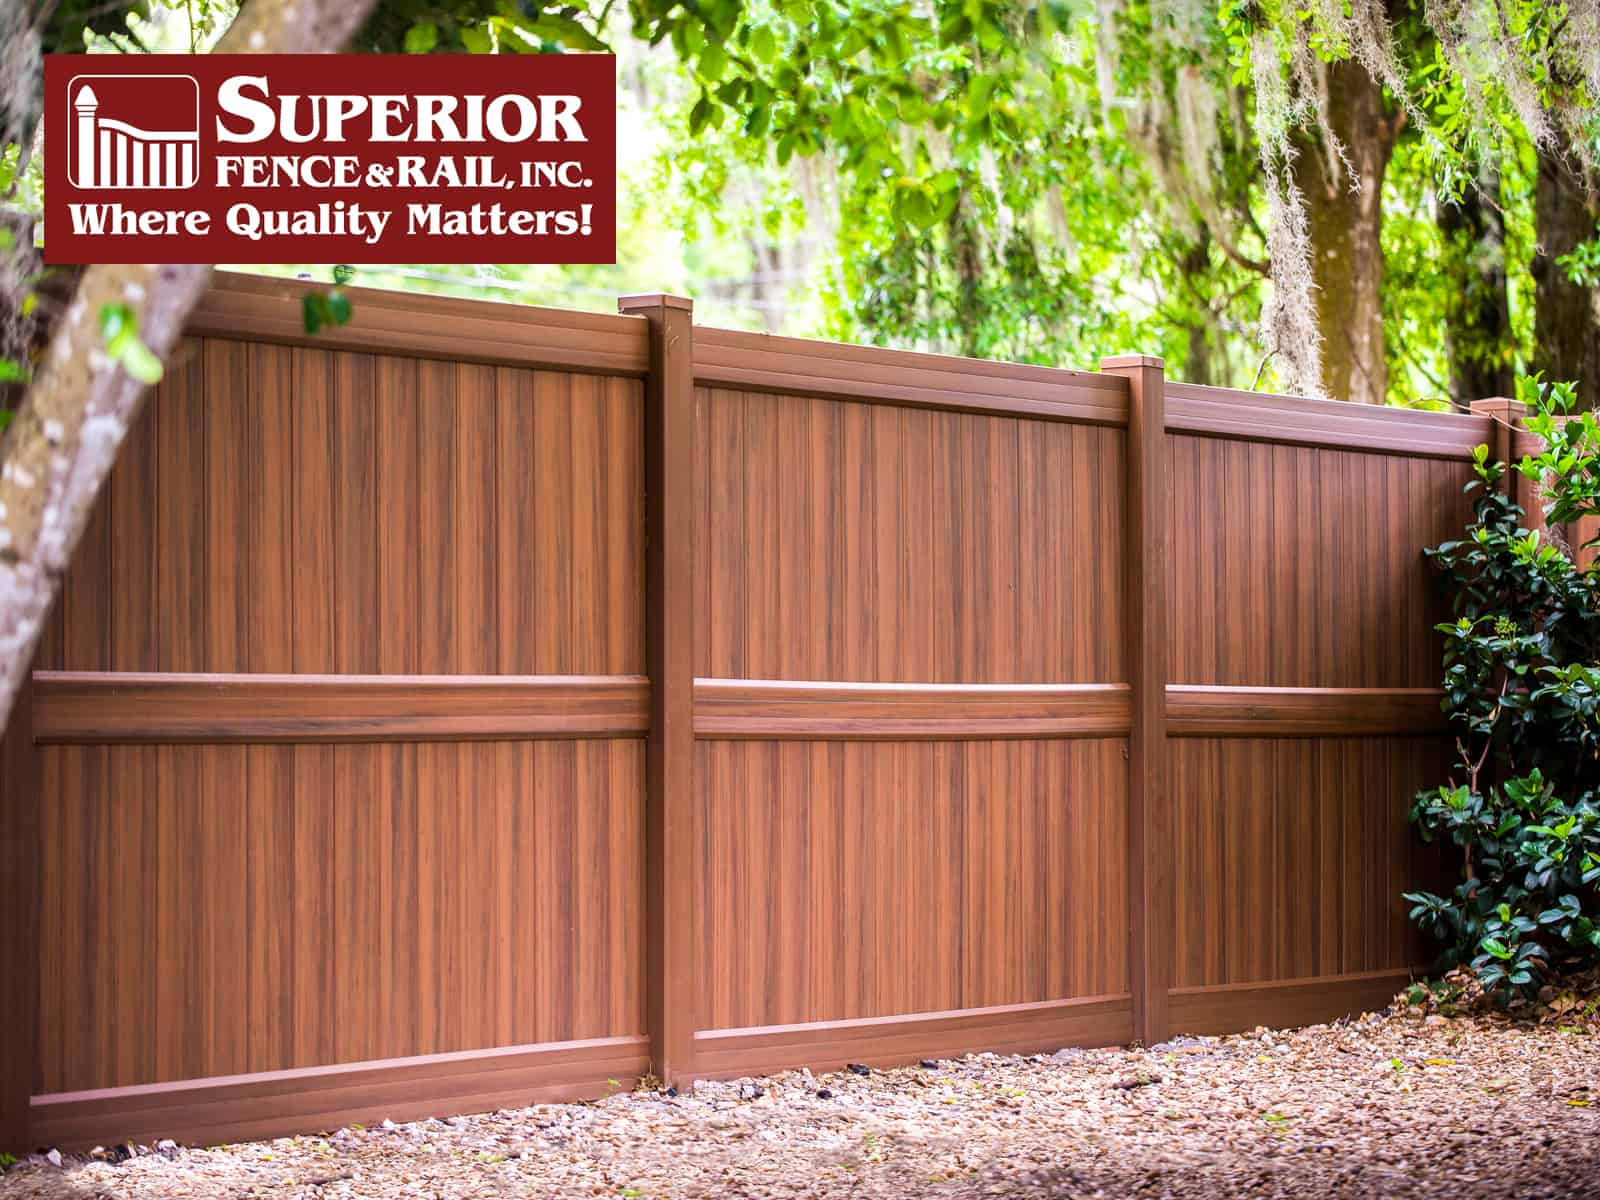 https://www.superiorfenceandrail.com/wp-content/uploads/2020/06/Mobile-Fence-Company-Contractor.jpg